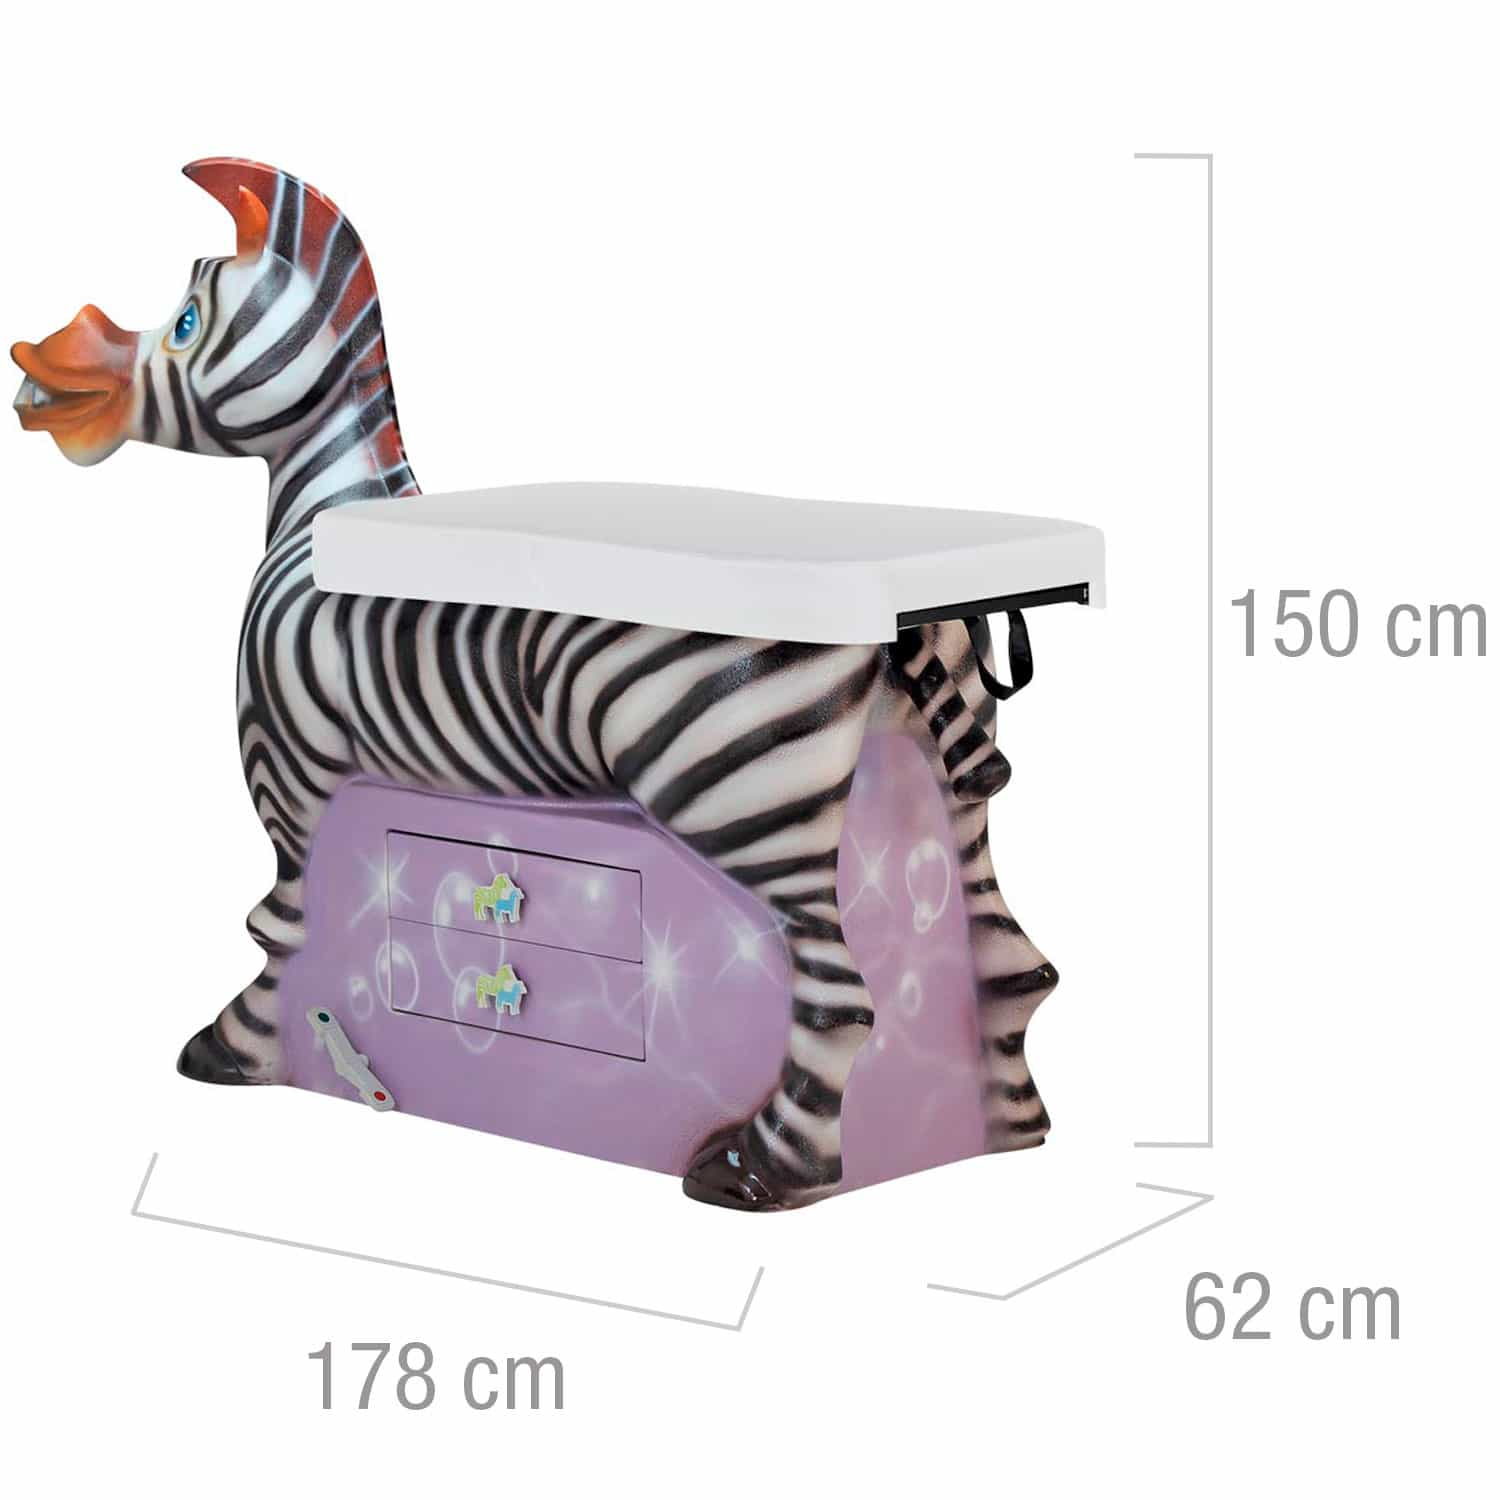 https://static.praxisdienst.com/out/pictures/generated/product/2/1500_1500_100/138020_untersuchungstisch_kinder_zebra_masse.jpg